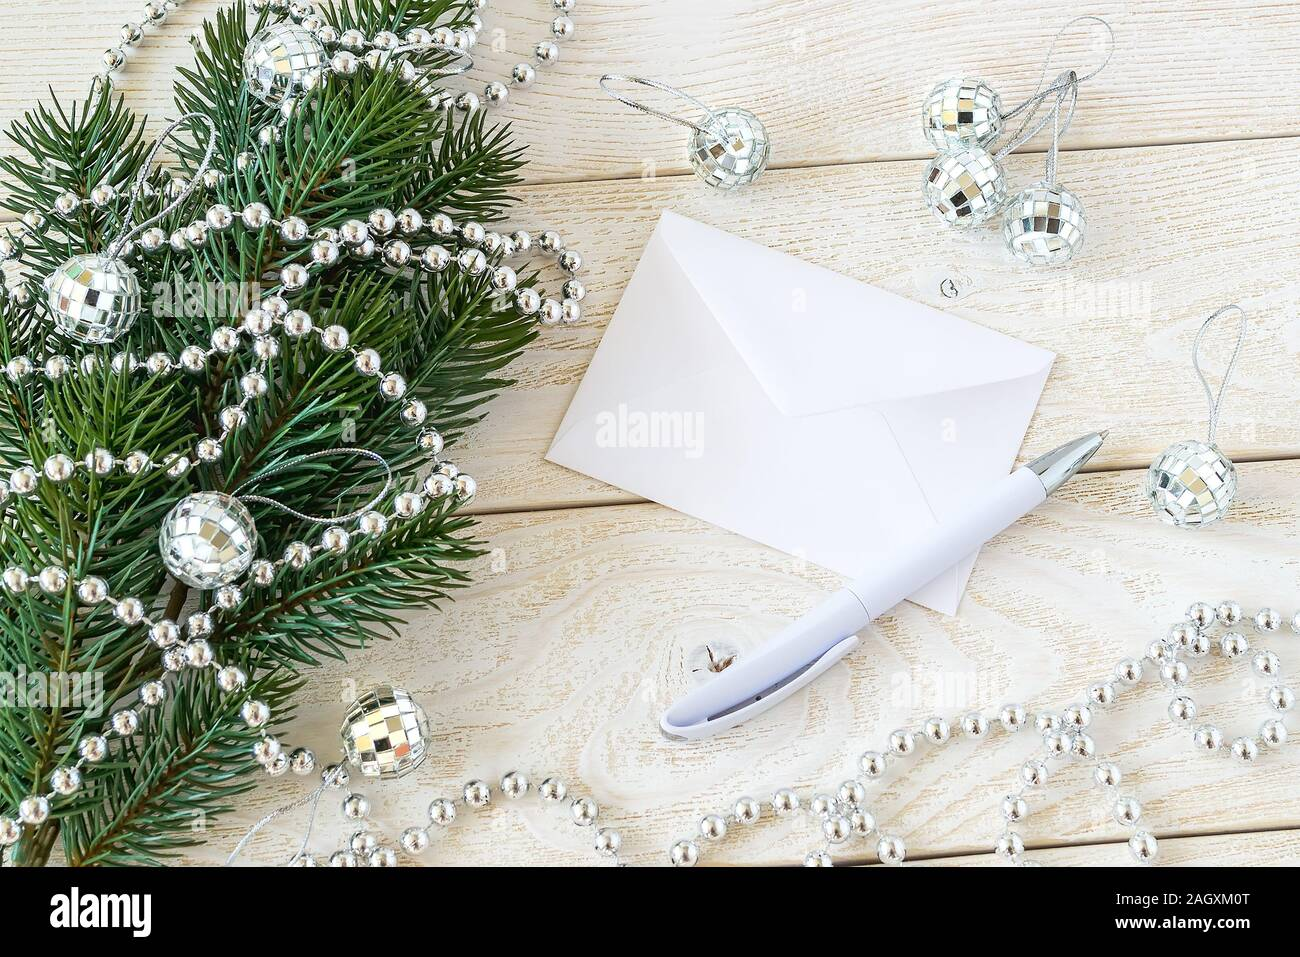 White Envelope And Ballpoint Pen On A Wooden Table Near A Fir Branch With Silver Bead Garland And Mirror Christmas Balls Greeteing Card For New Year Stock Photo Alamy